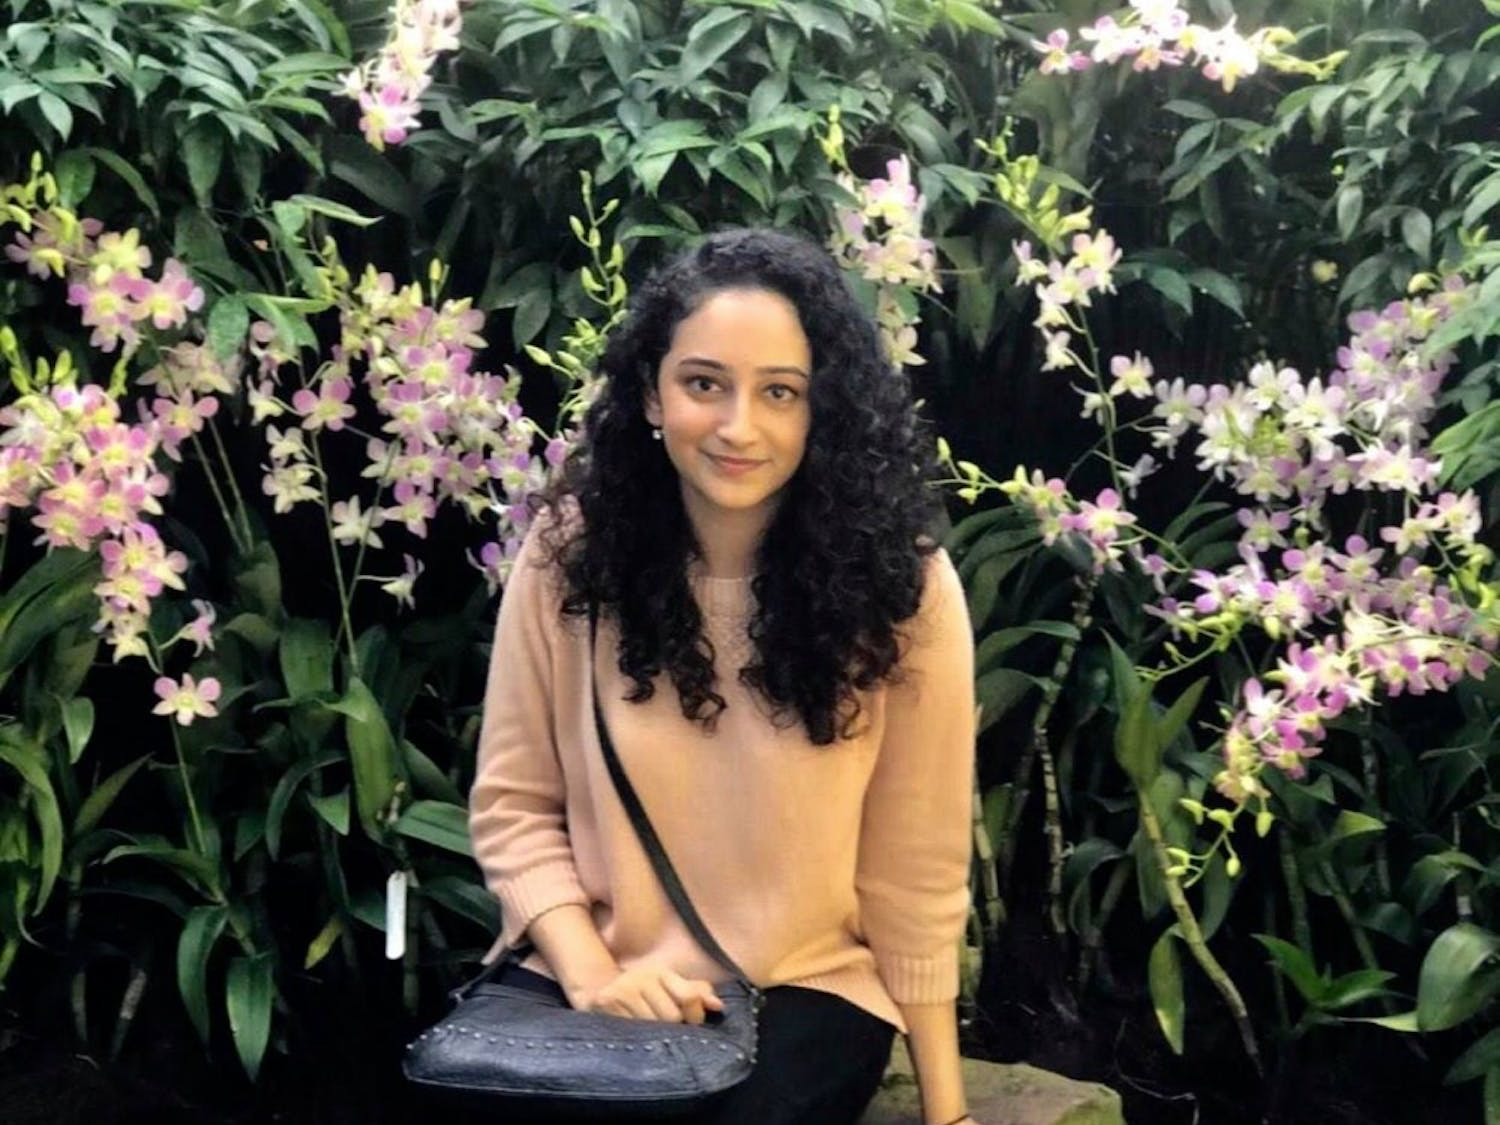 Renuka Ramanadhan, a business administration major, is currently recovering in the hospital after being hit by a car outside her Hadley Village apartment.